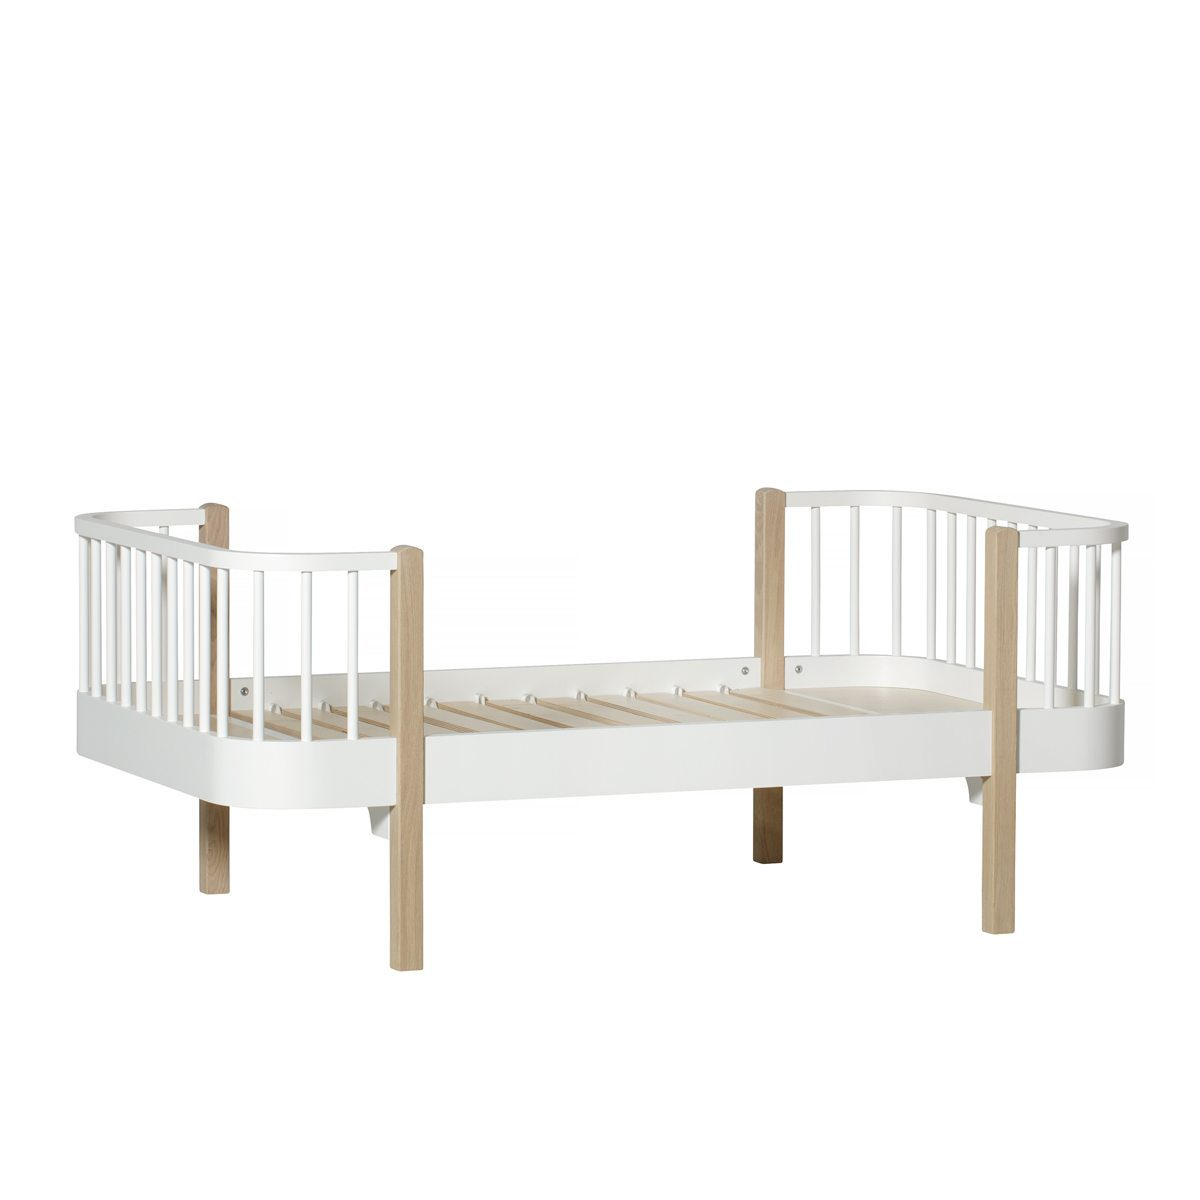 Oliver Furniture juniorbed Wood 160 cm white oak